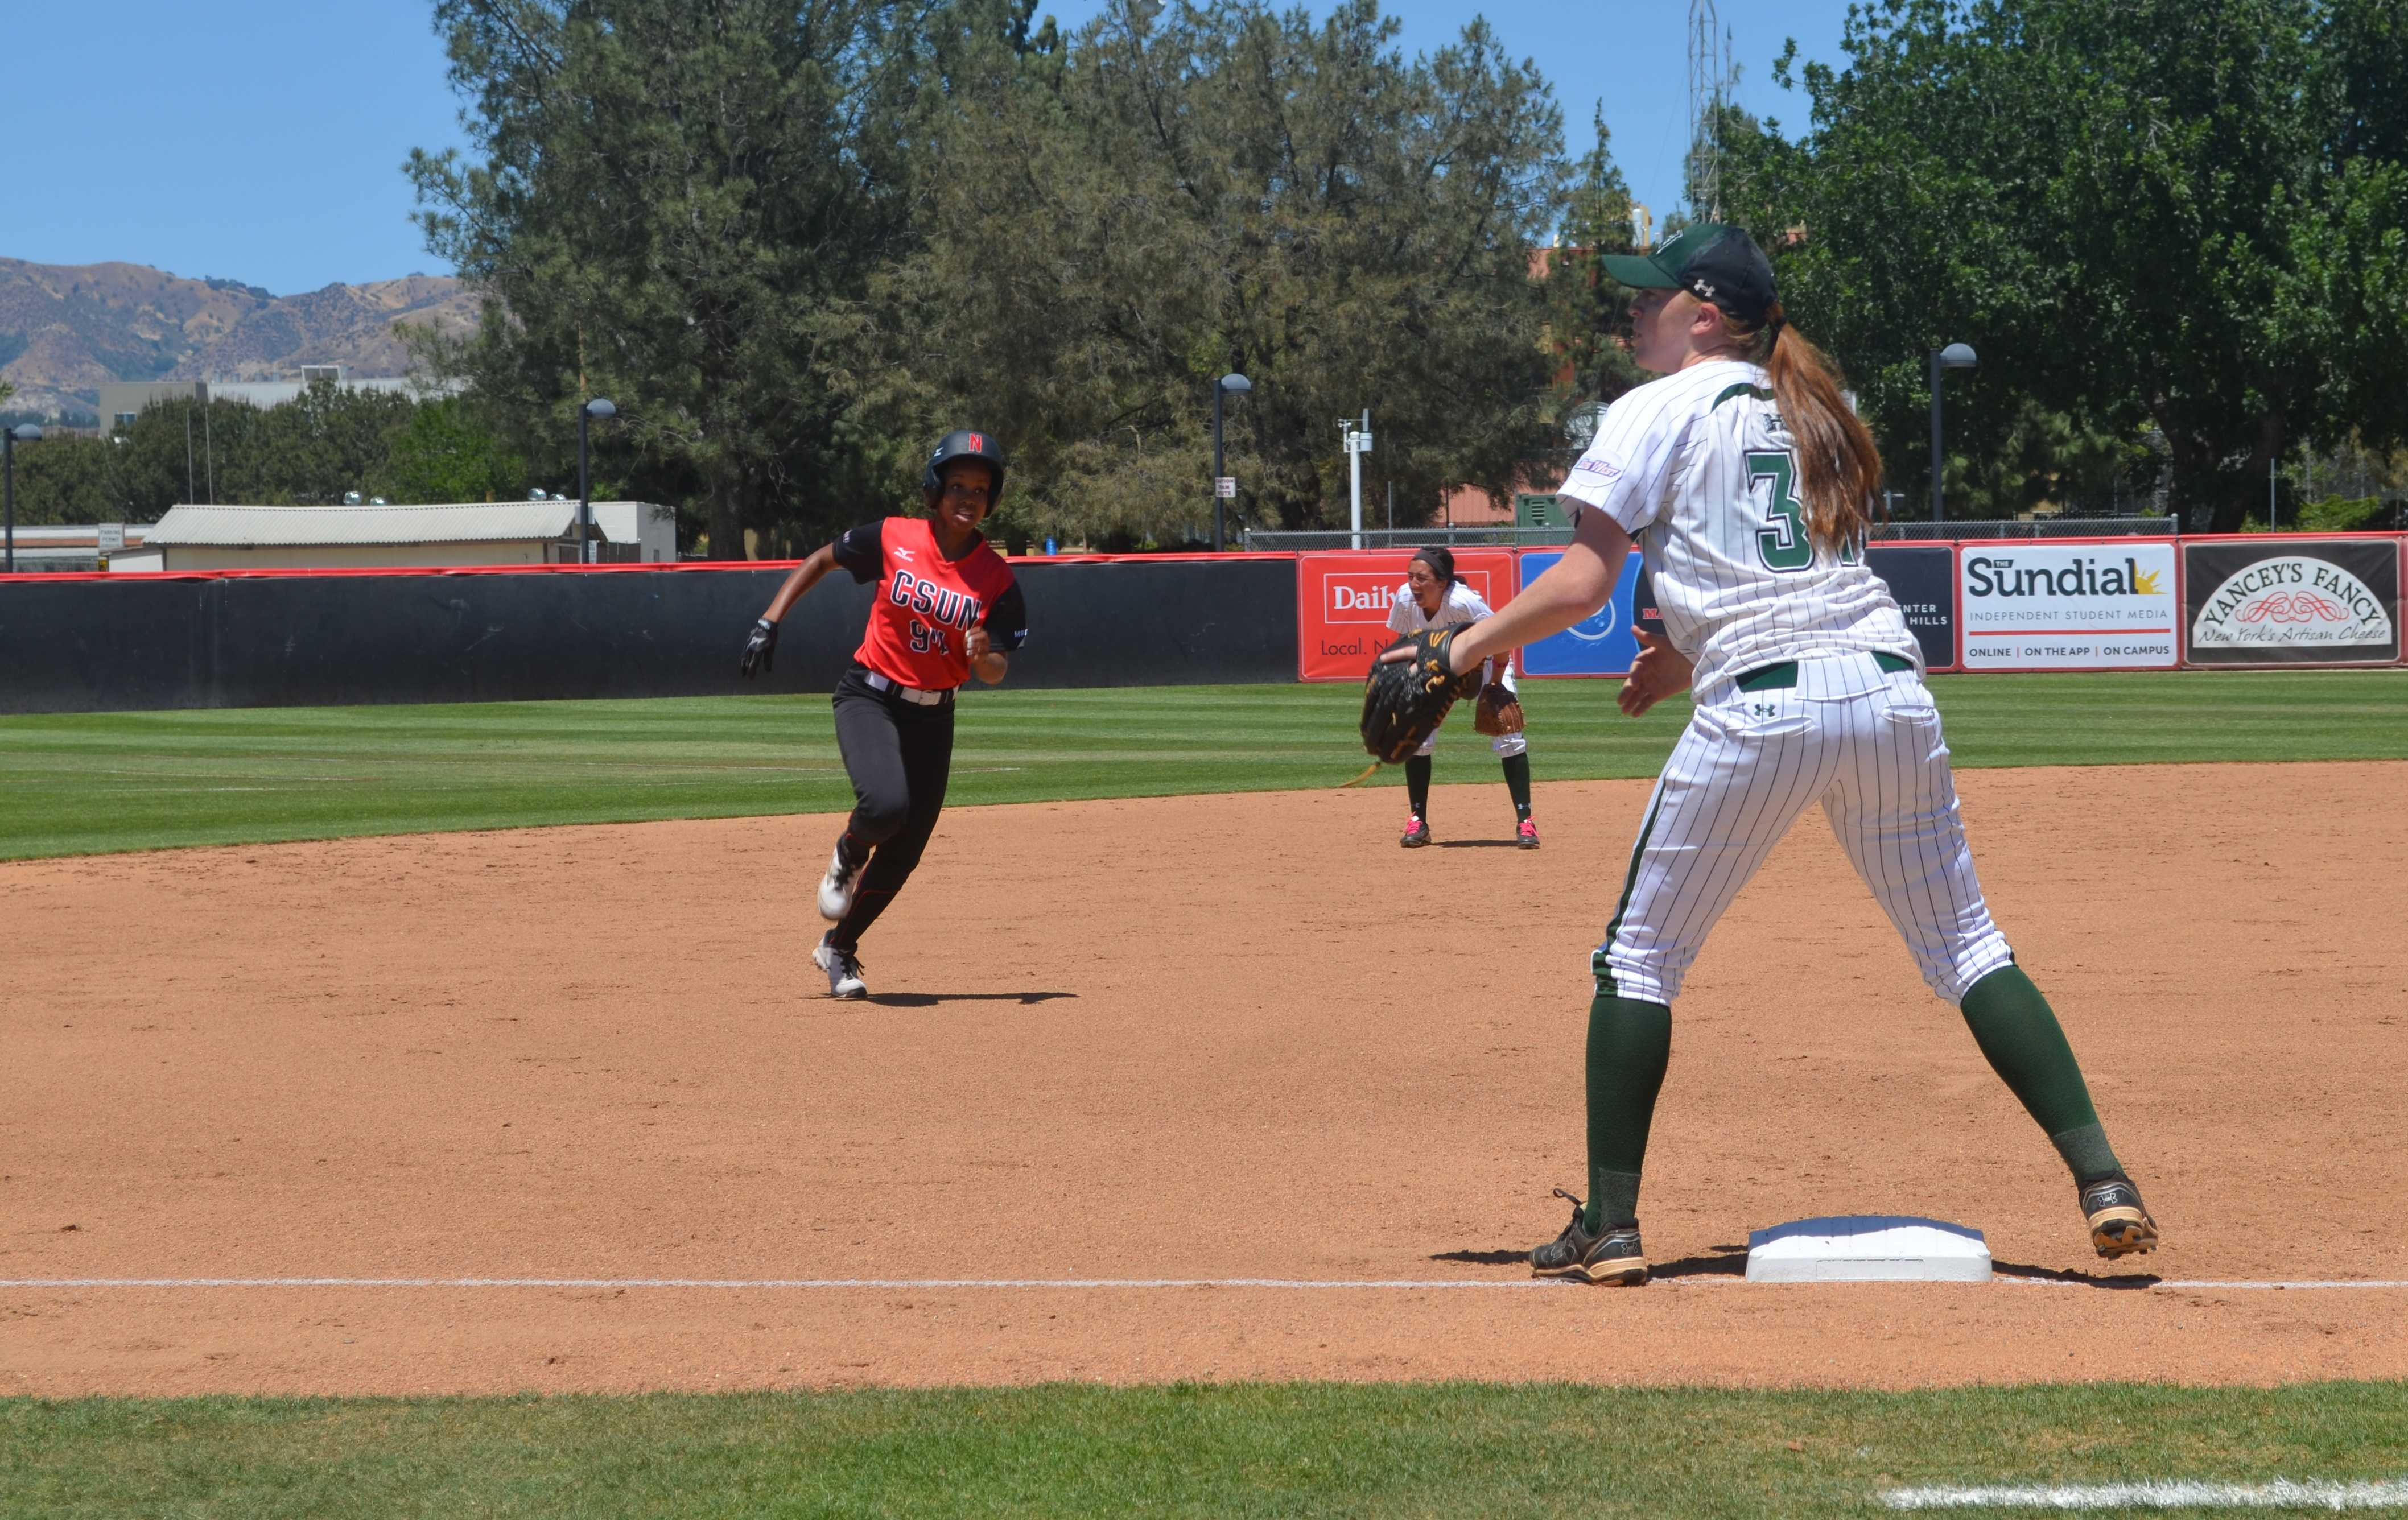 Sophomore+Taylor+Glover+darts+toward+third+during+CSUN%27s+softball+game+against+the+University+of+Hawai%27i+on+Saturday%2C+May+2.+Natahlie+Ramirez%2FContributor